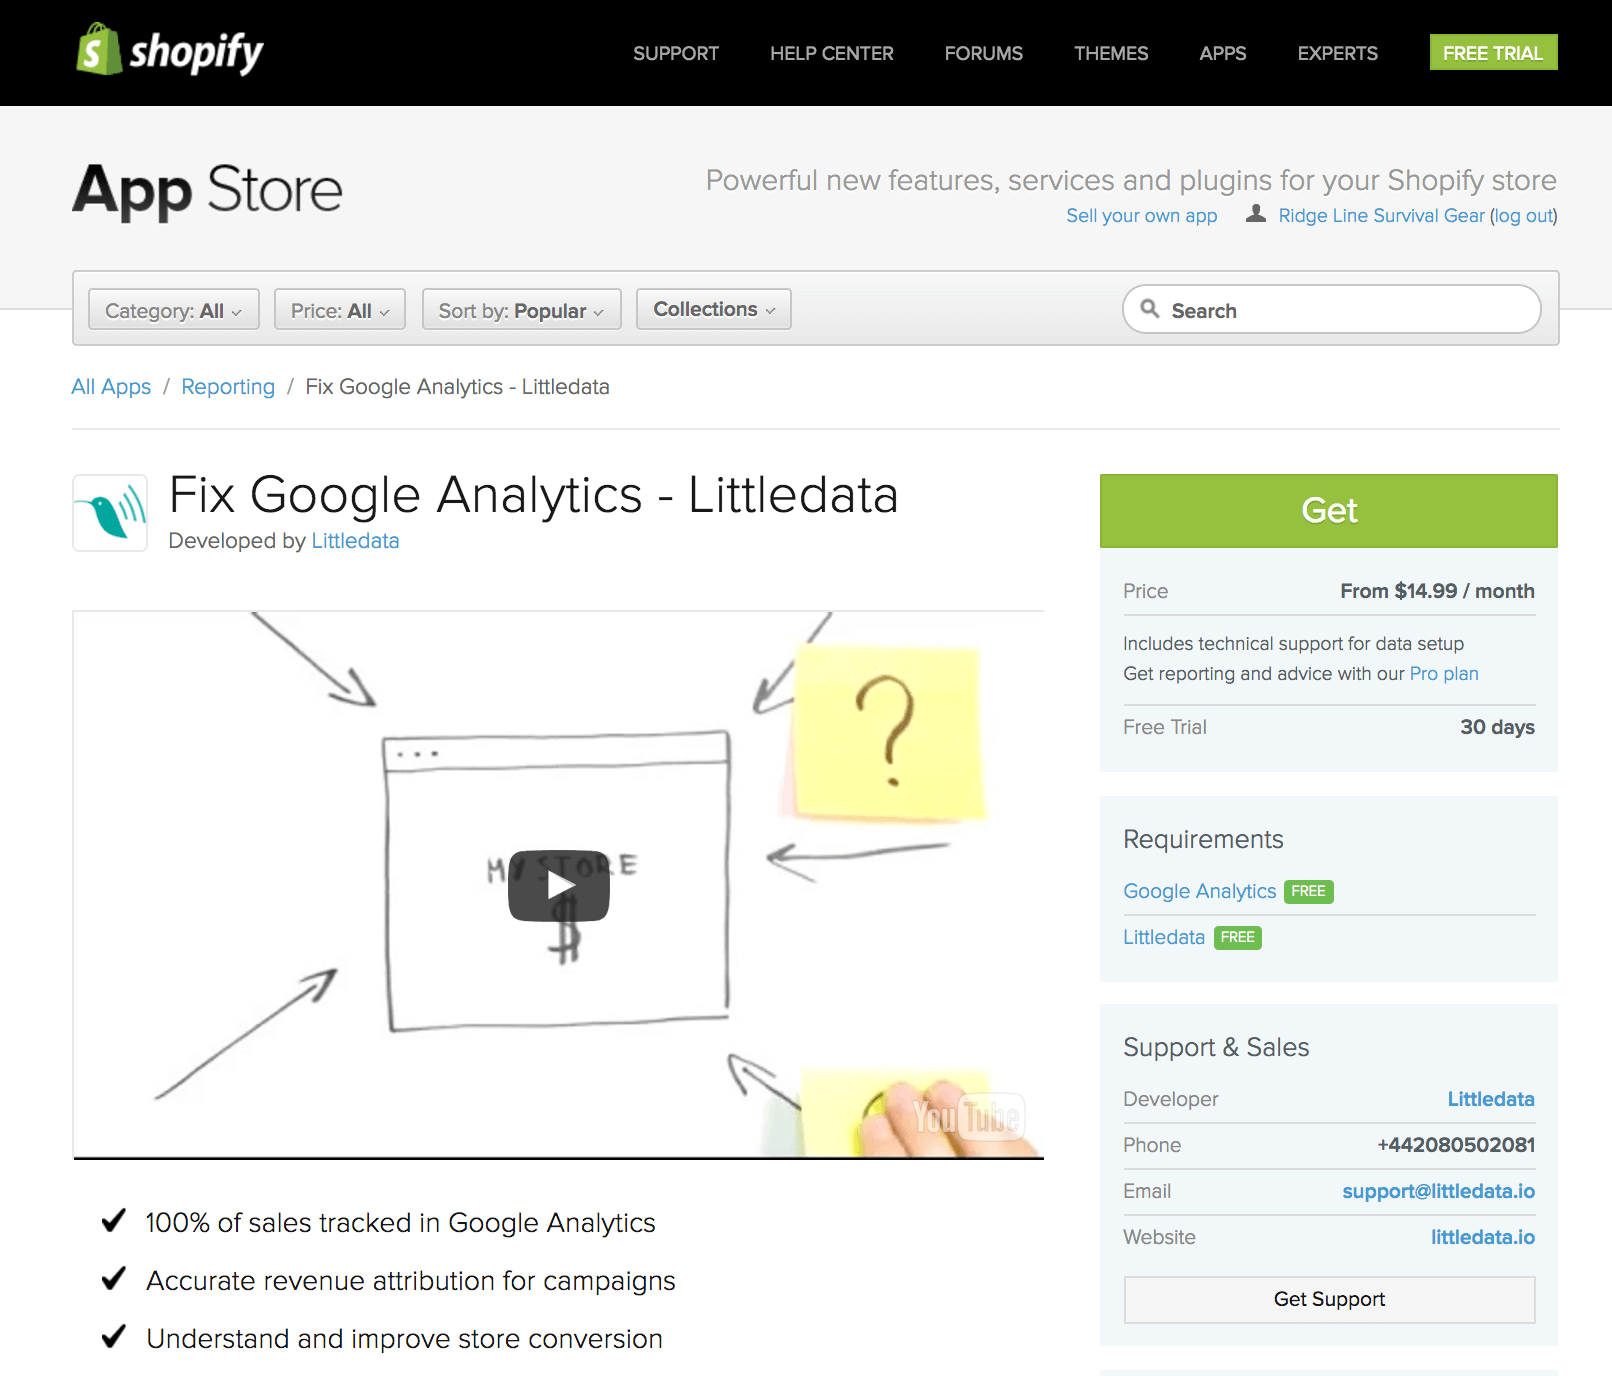 Fix Google Analytics app for Shopify stores